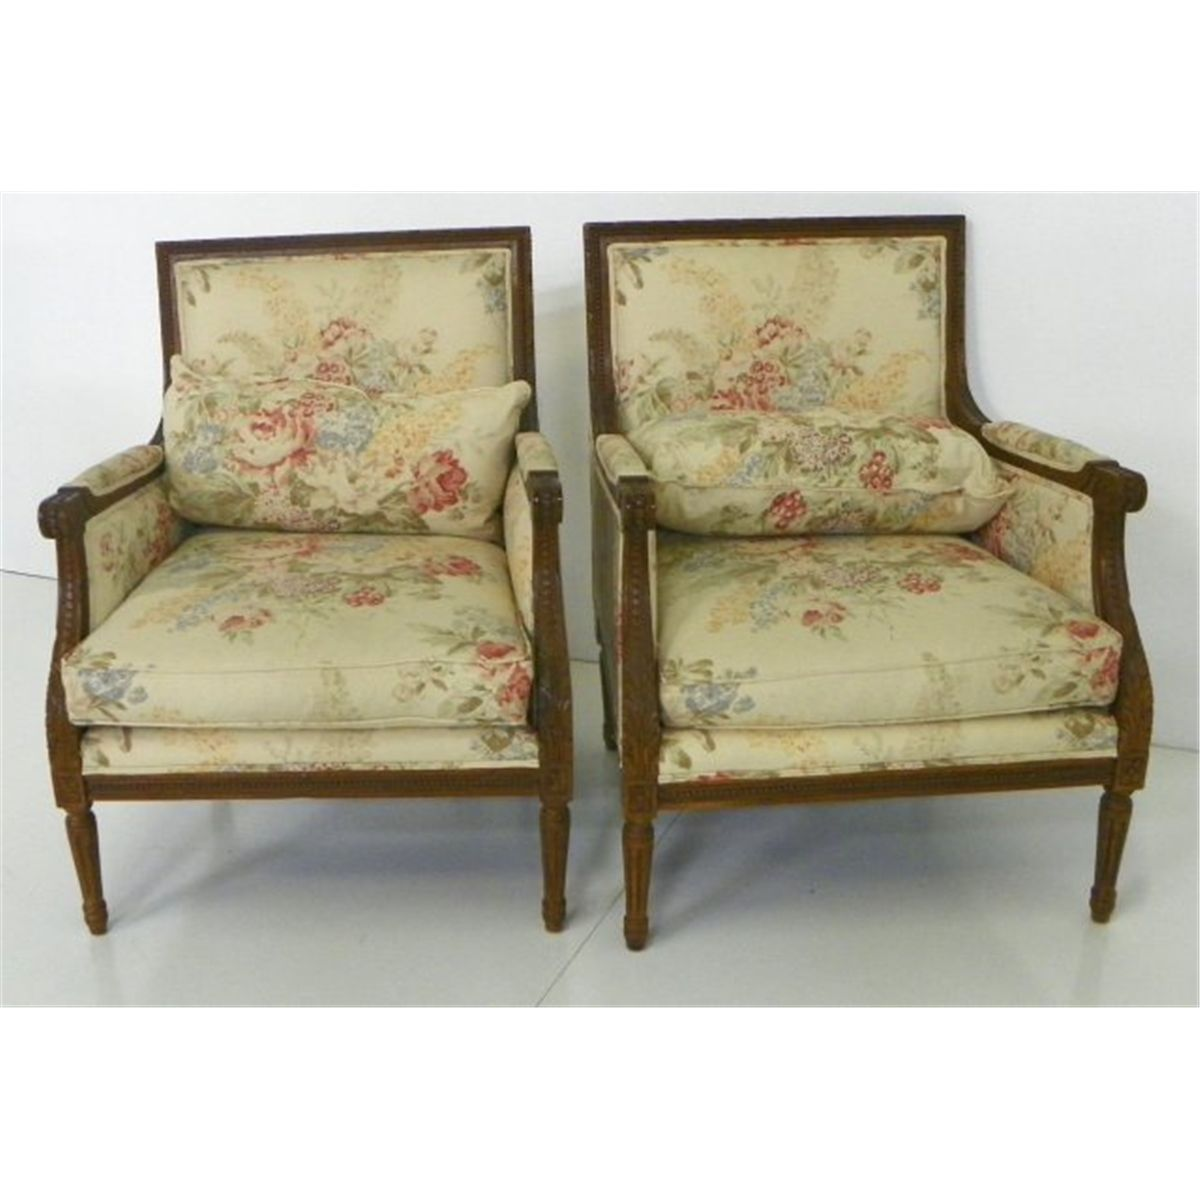 bergere chairs for sale baby swing chair argos ireland pair louis xvi style ralph lauren loading zoom